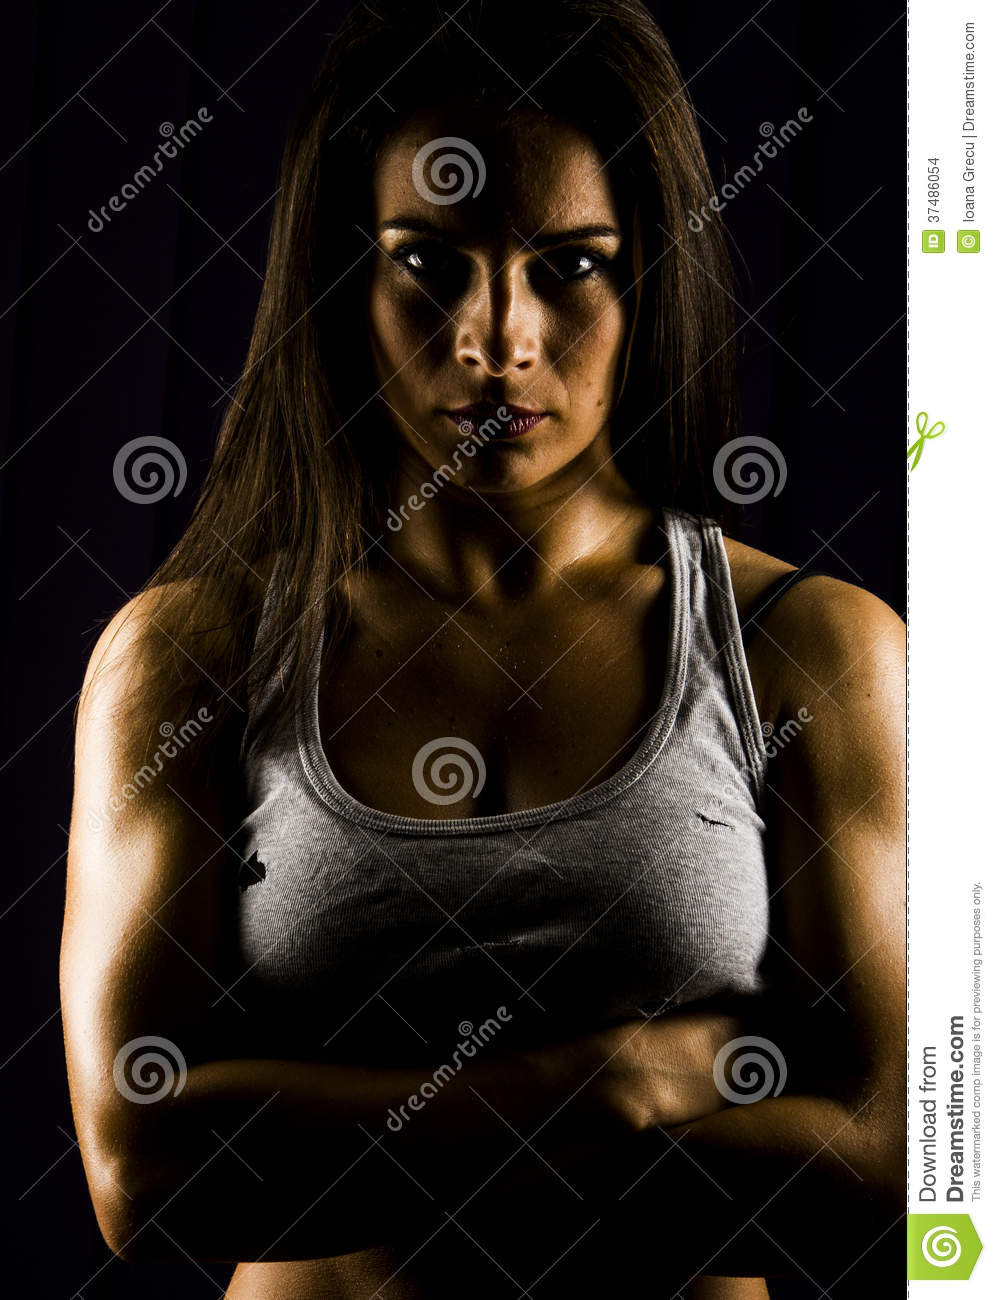 Fit and strong young woman personal trainer